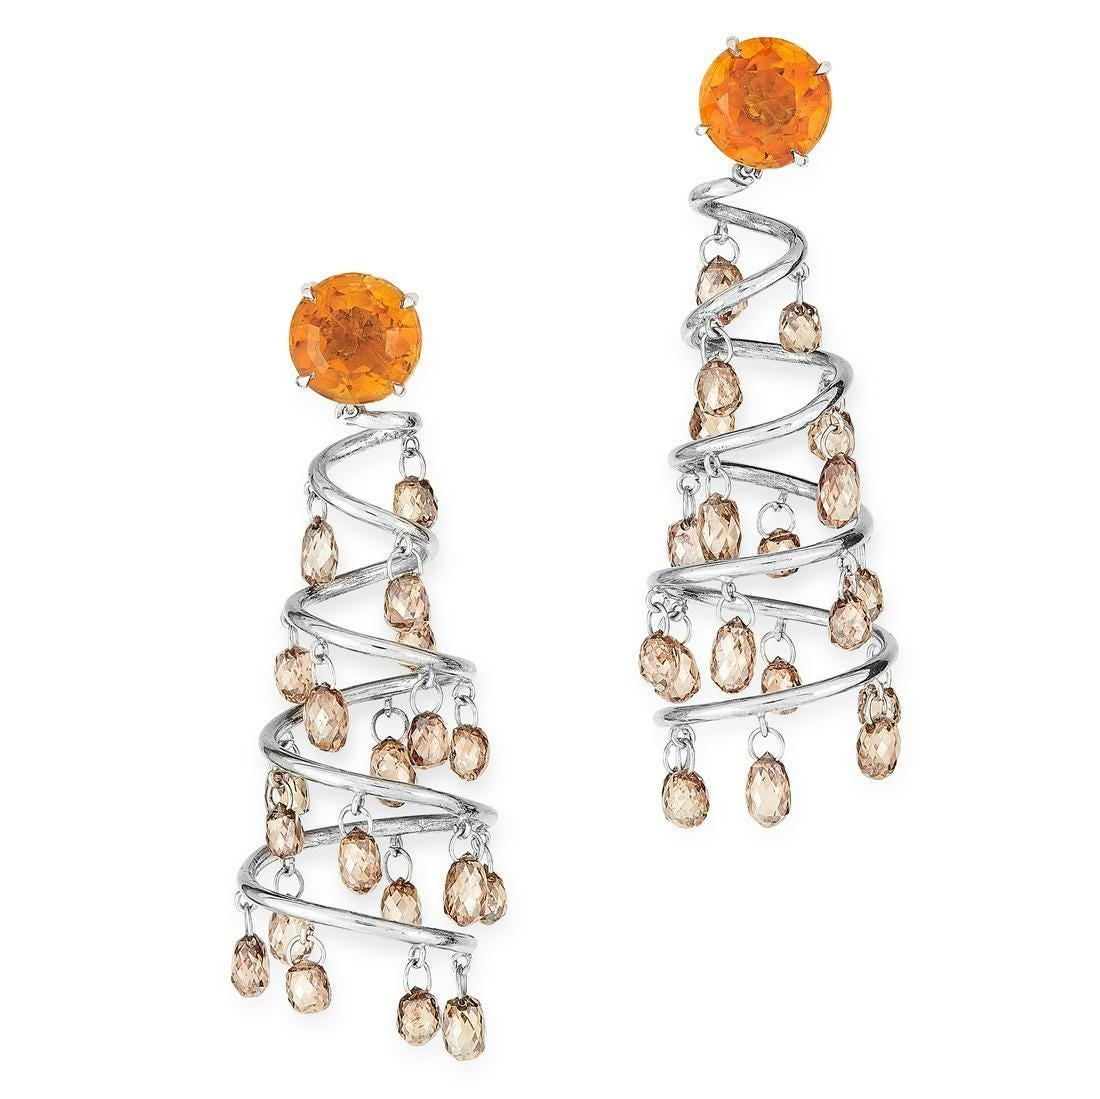 PAIR OF DIAMOND AND CITRINE CHANDELIER EARRINGS each designed as a tapering spiral, suspending forty